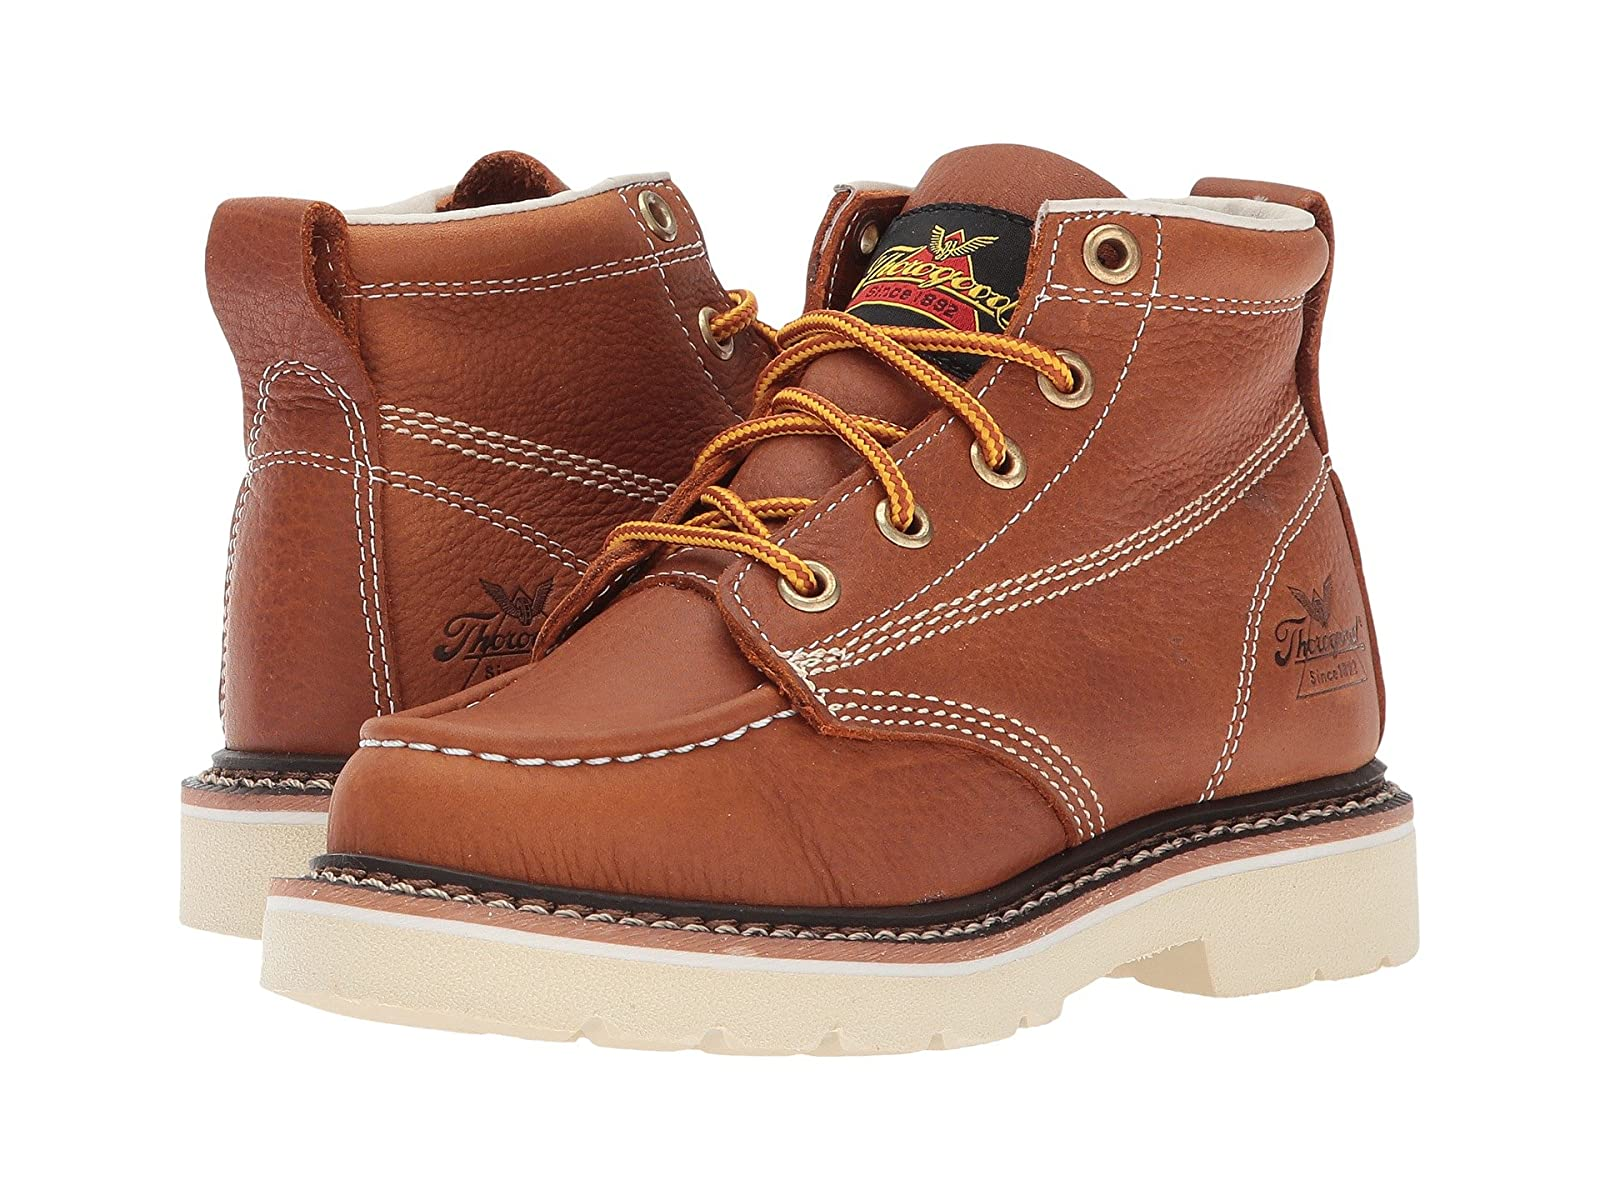 Thorogood Jackson Moc Toe Boots (Little Kid)Cheap and distinctive eye-catching shoes